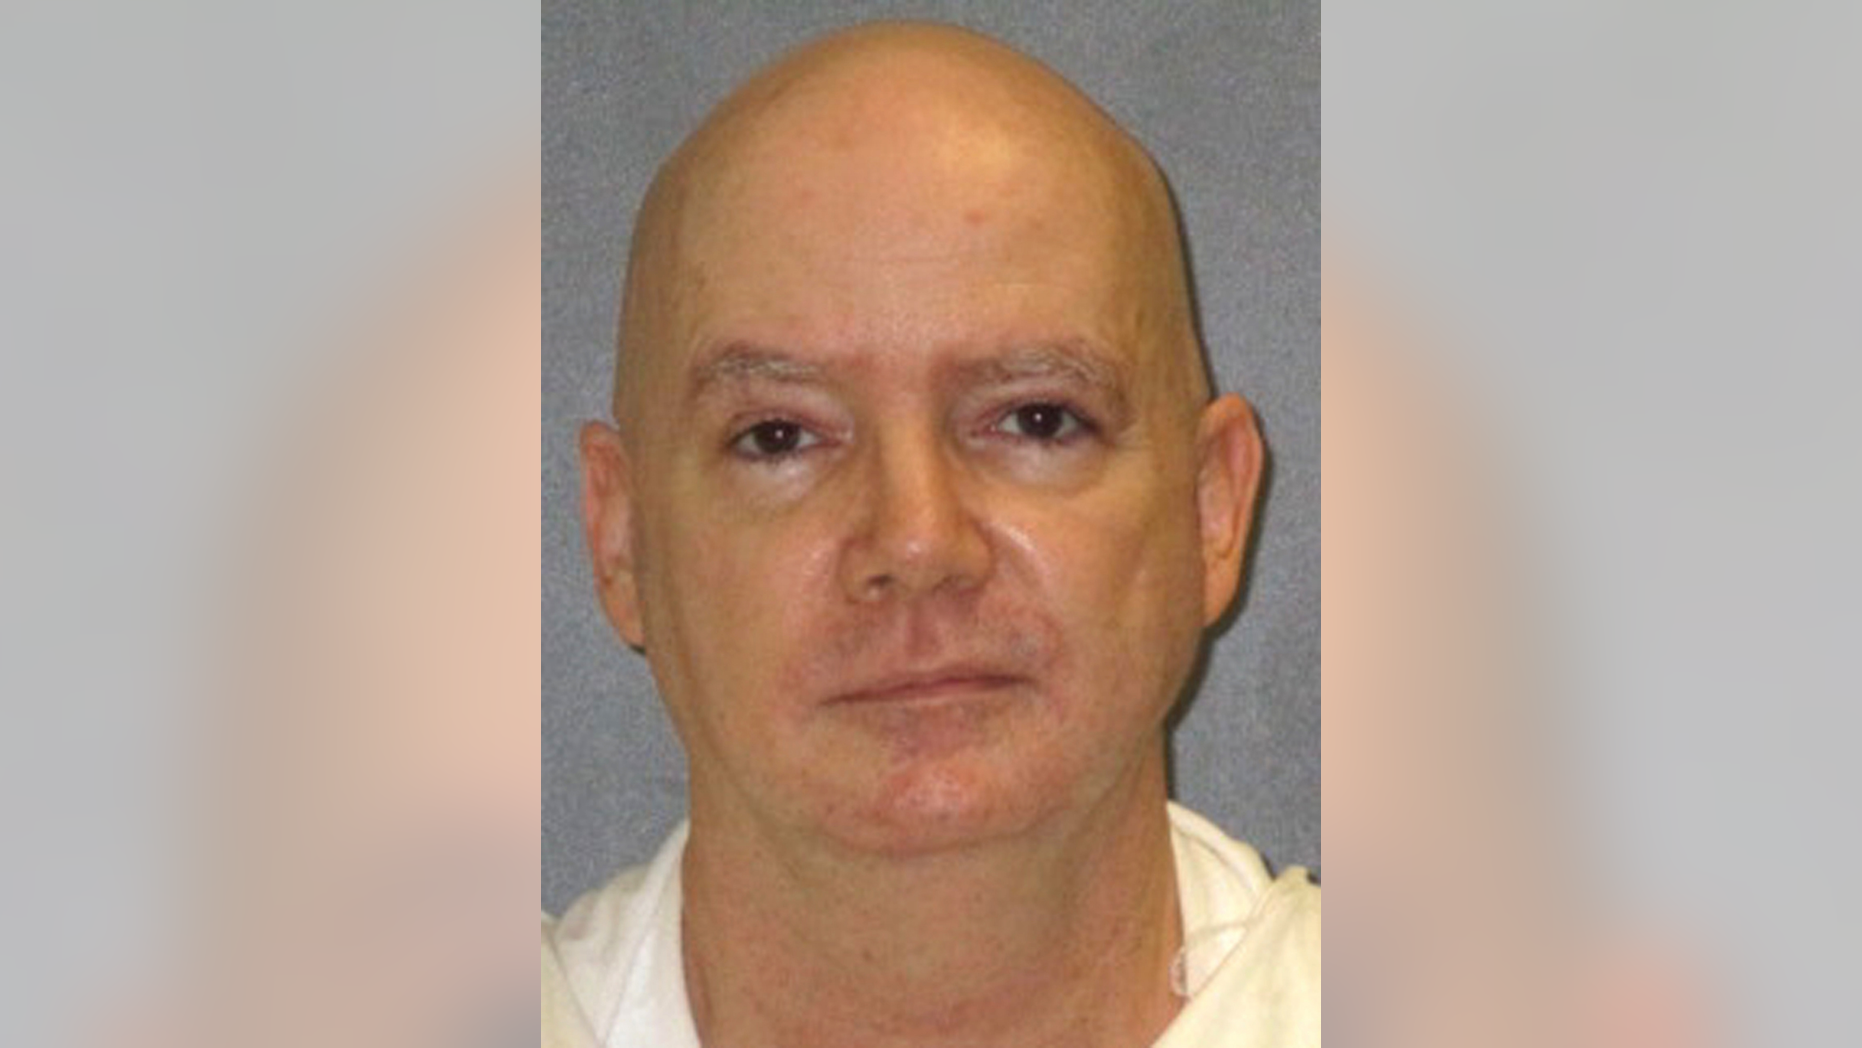 """Anthony Allen Shore, who was dubbed Houston's """"Tourniquet Killer,"""" had his execution delayed on Wednesday."""